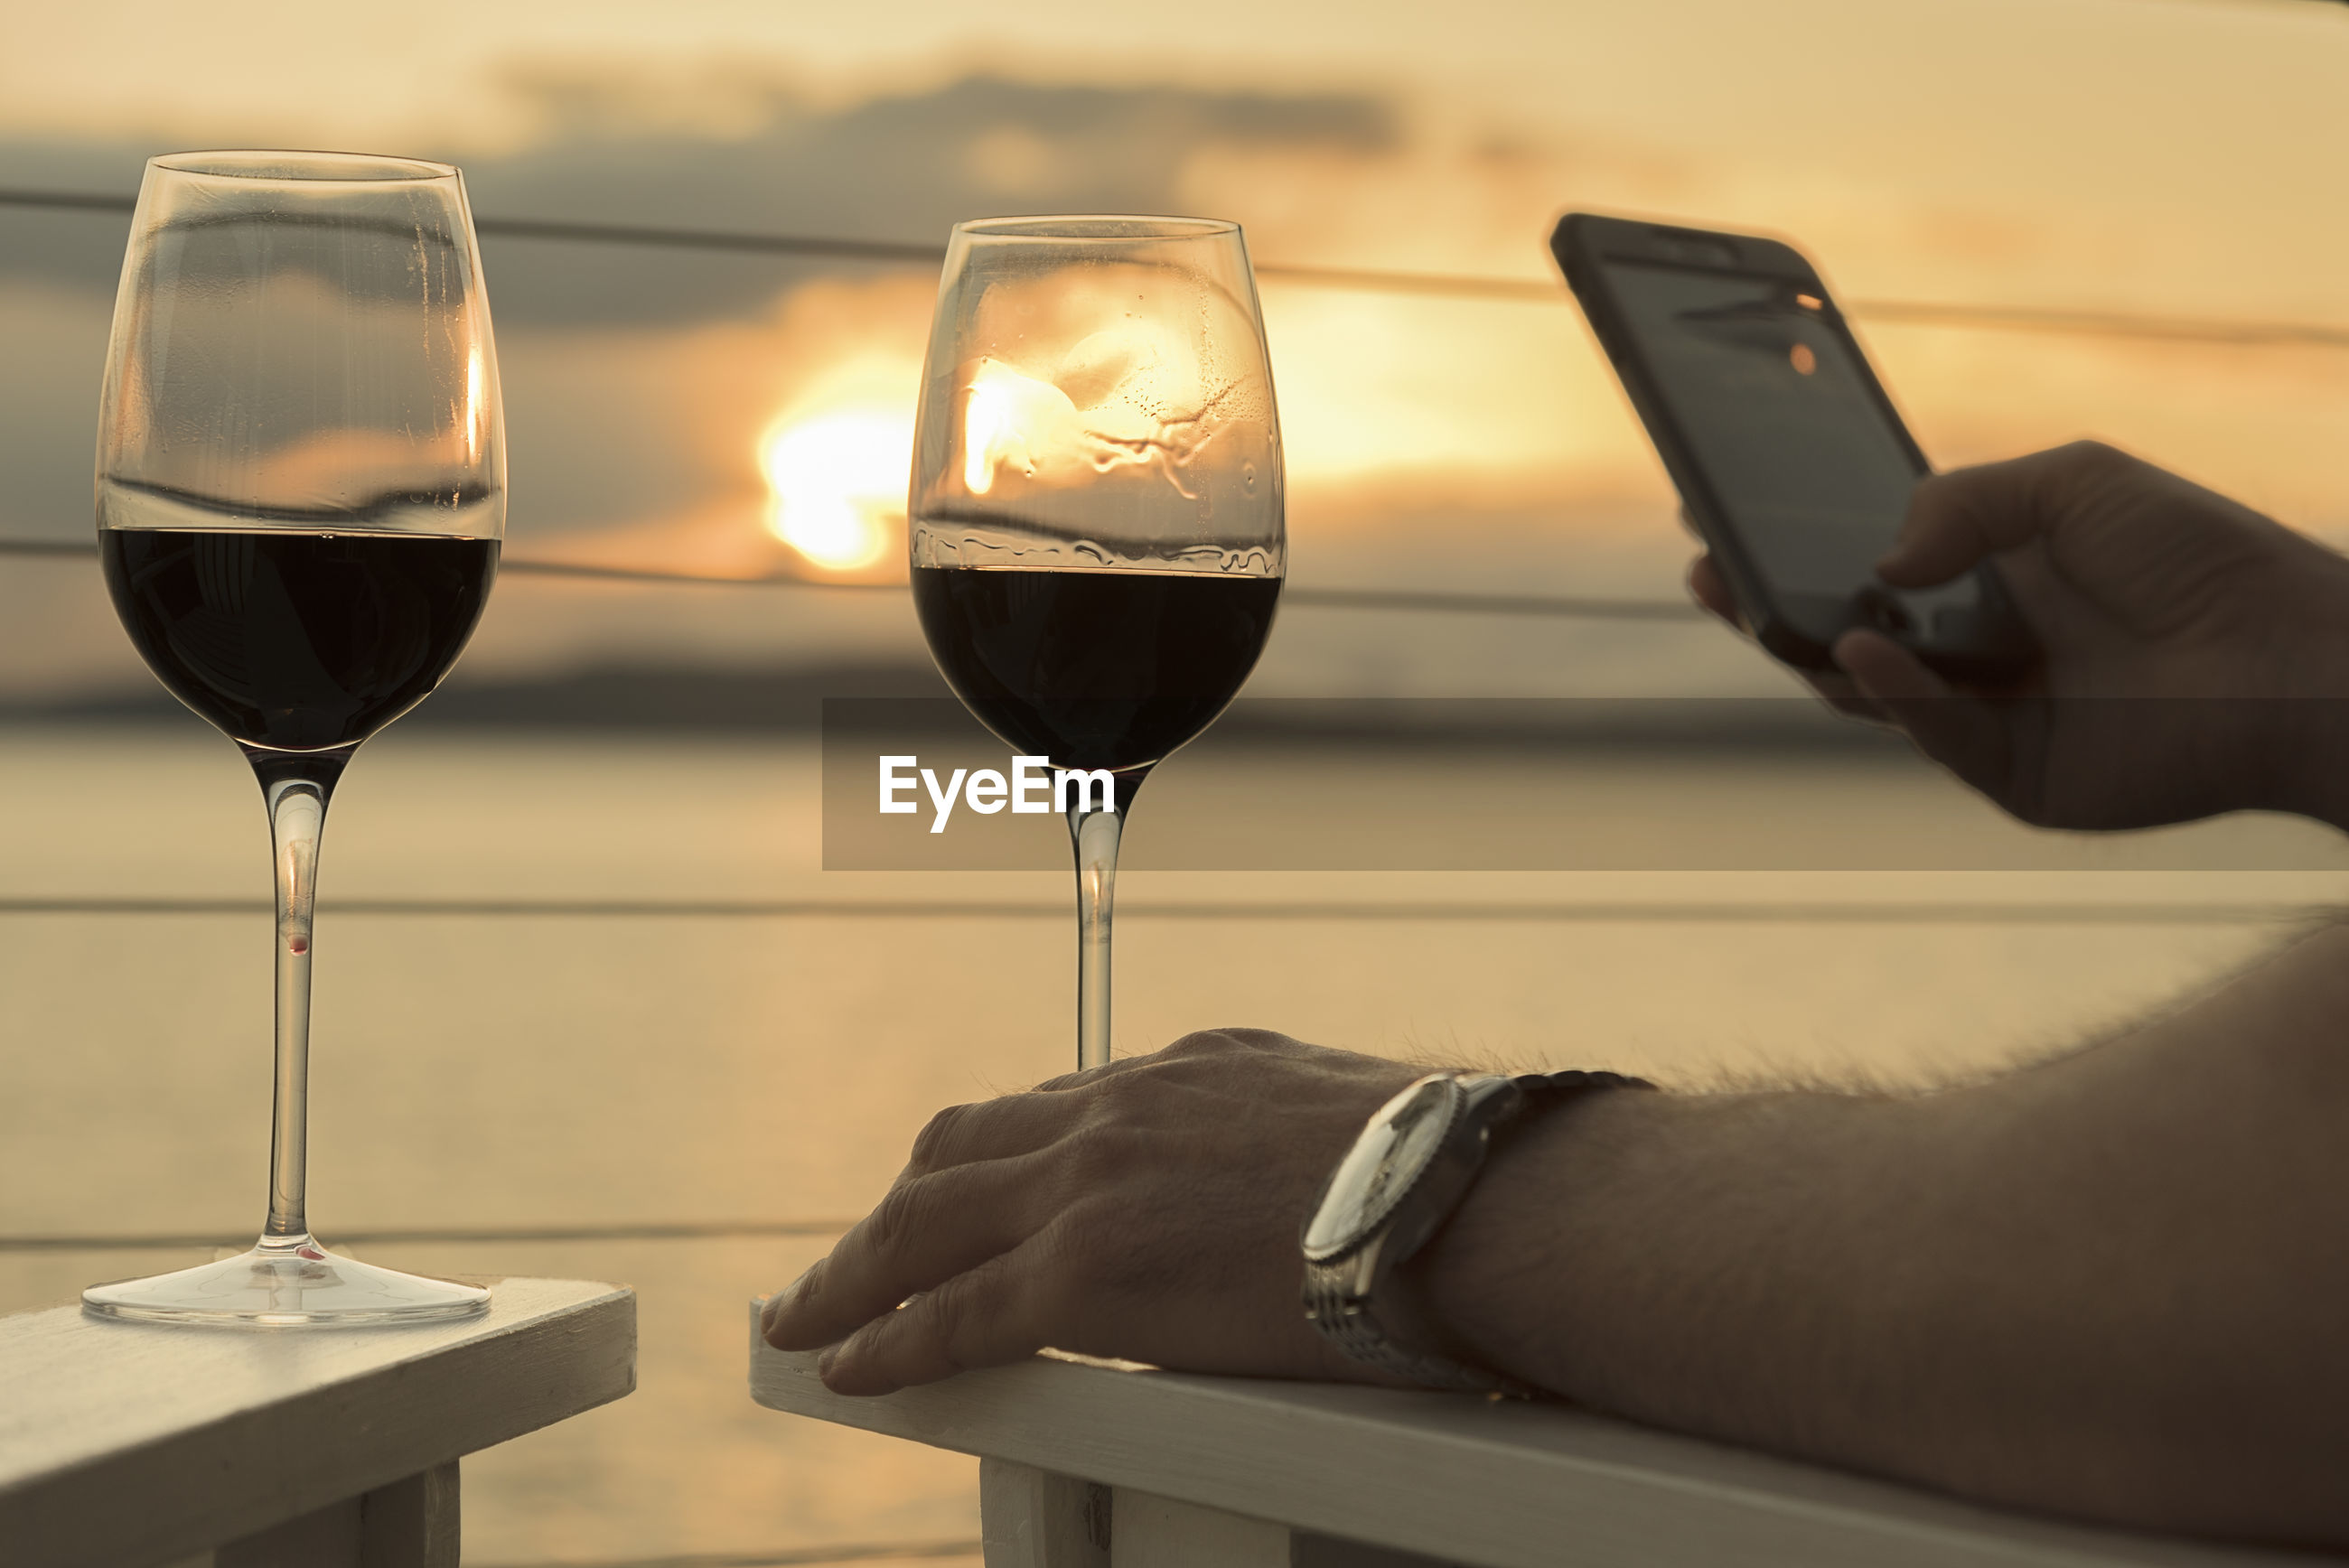 Cropped hands of man with wine glasses using phone by sea against sky during sunset